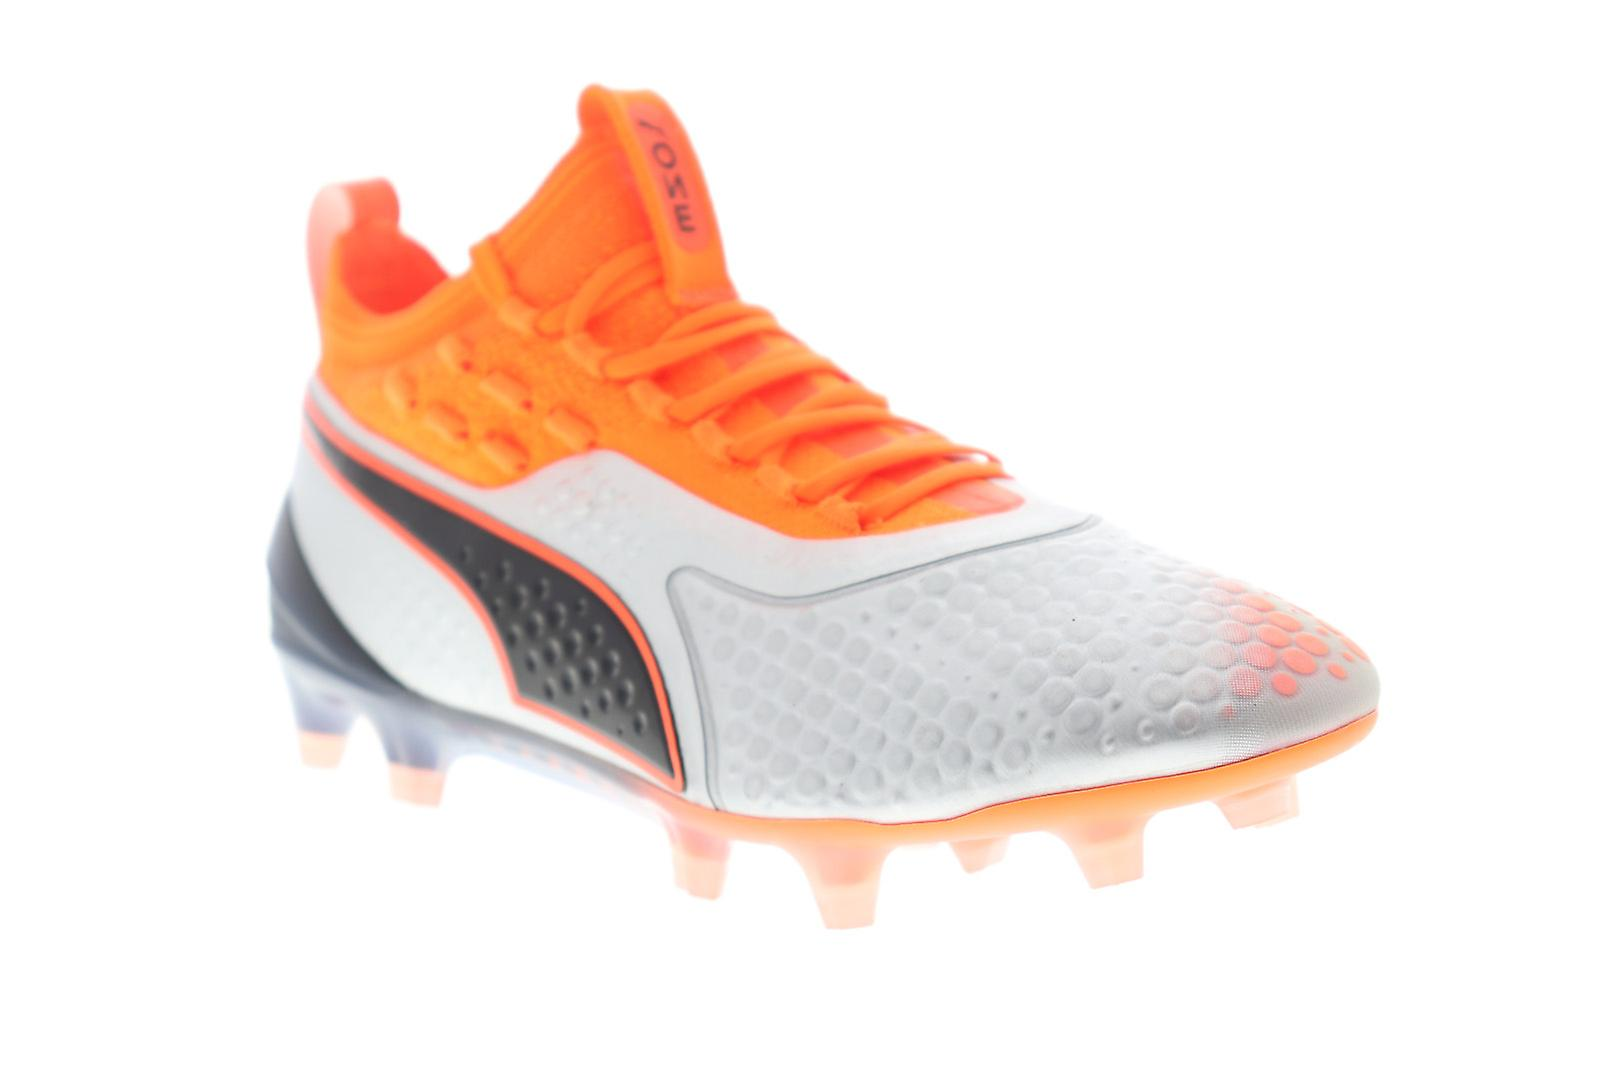 ca5765a70 Puma One 1 Fg Ag Mens Sliver Orange Synthetic Athletic Soccer ...